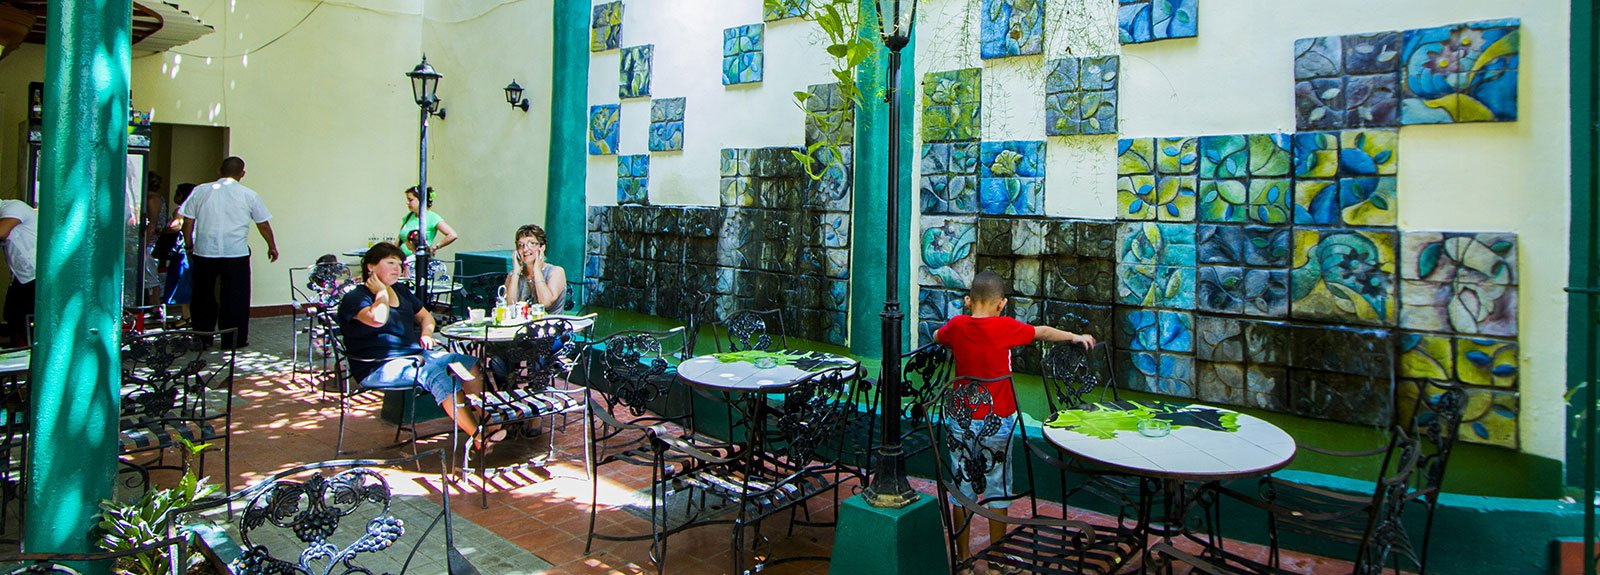 Bosque Bologna bar outdoor, green and white walls